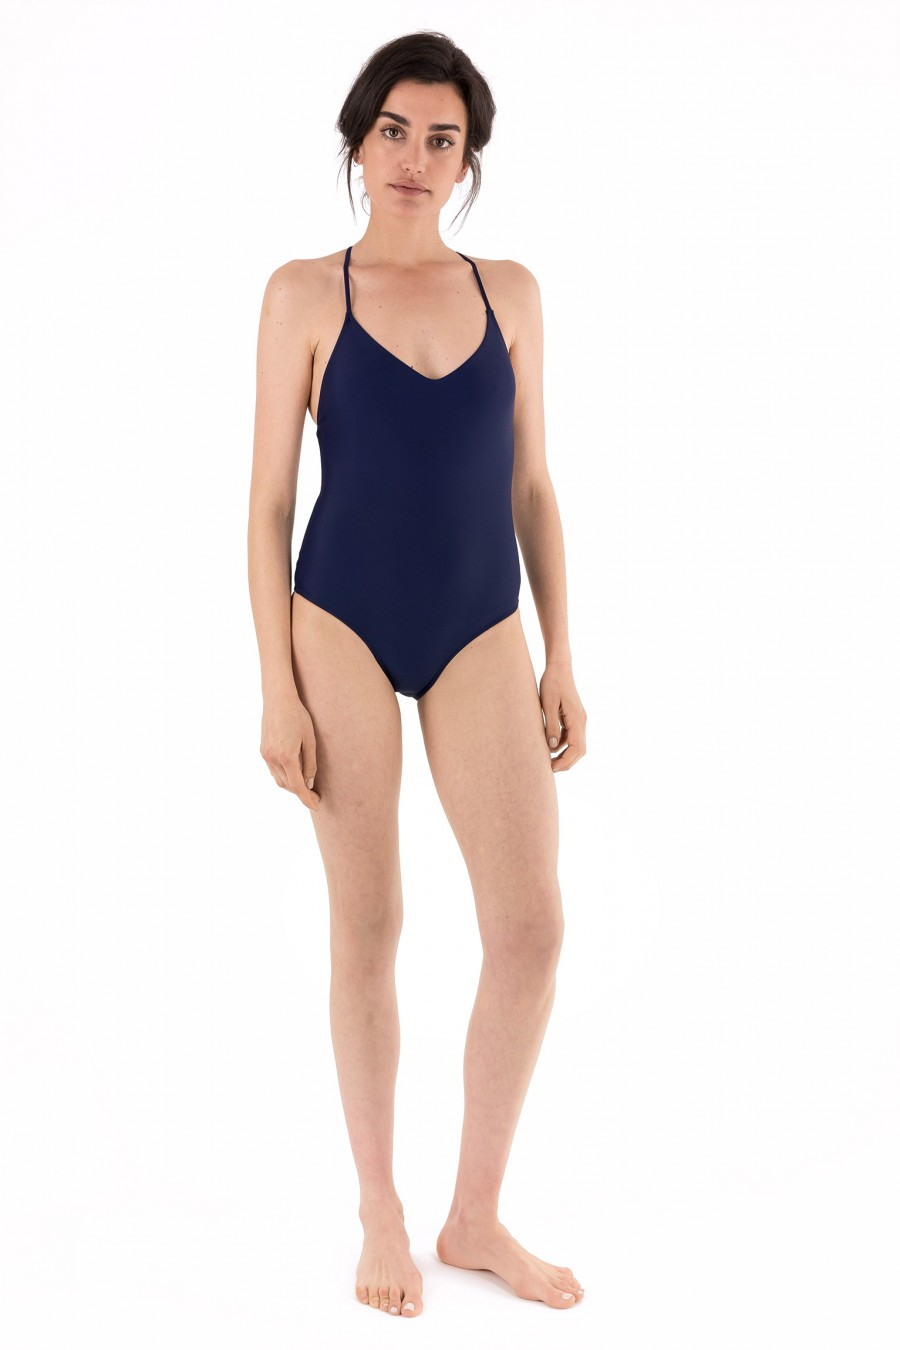 One-piece swimsuit with crossed shoulder straps